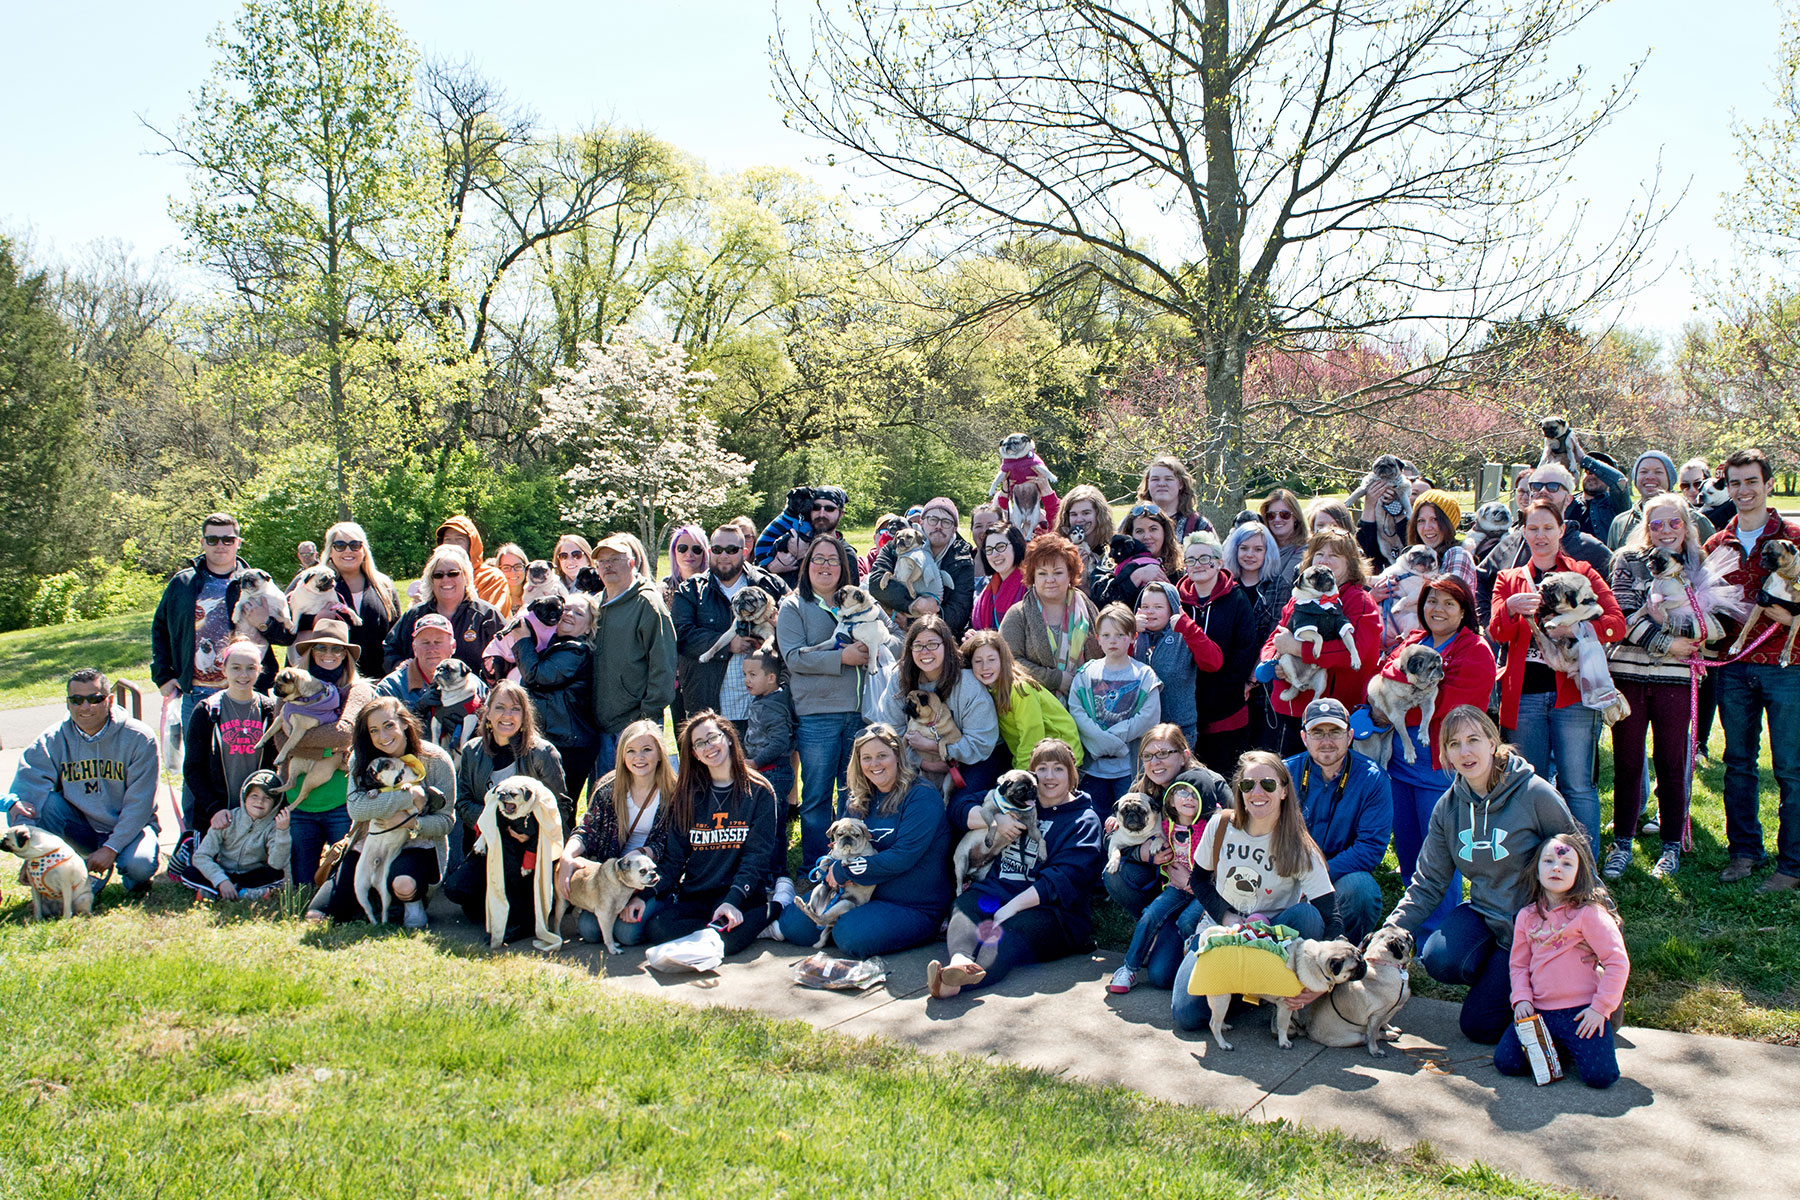 pug festival 2016 group shoot